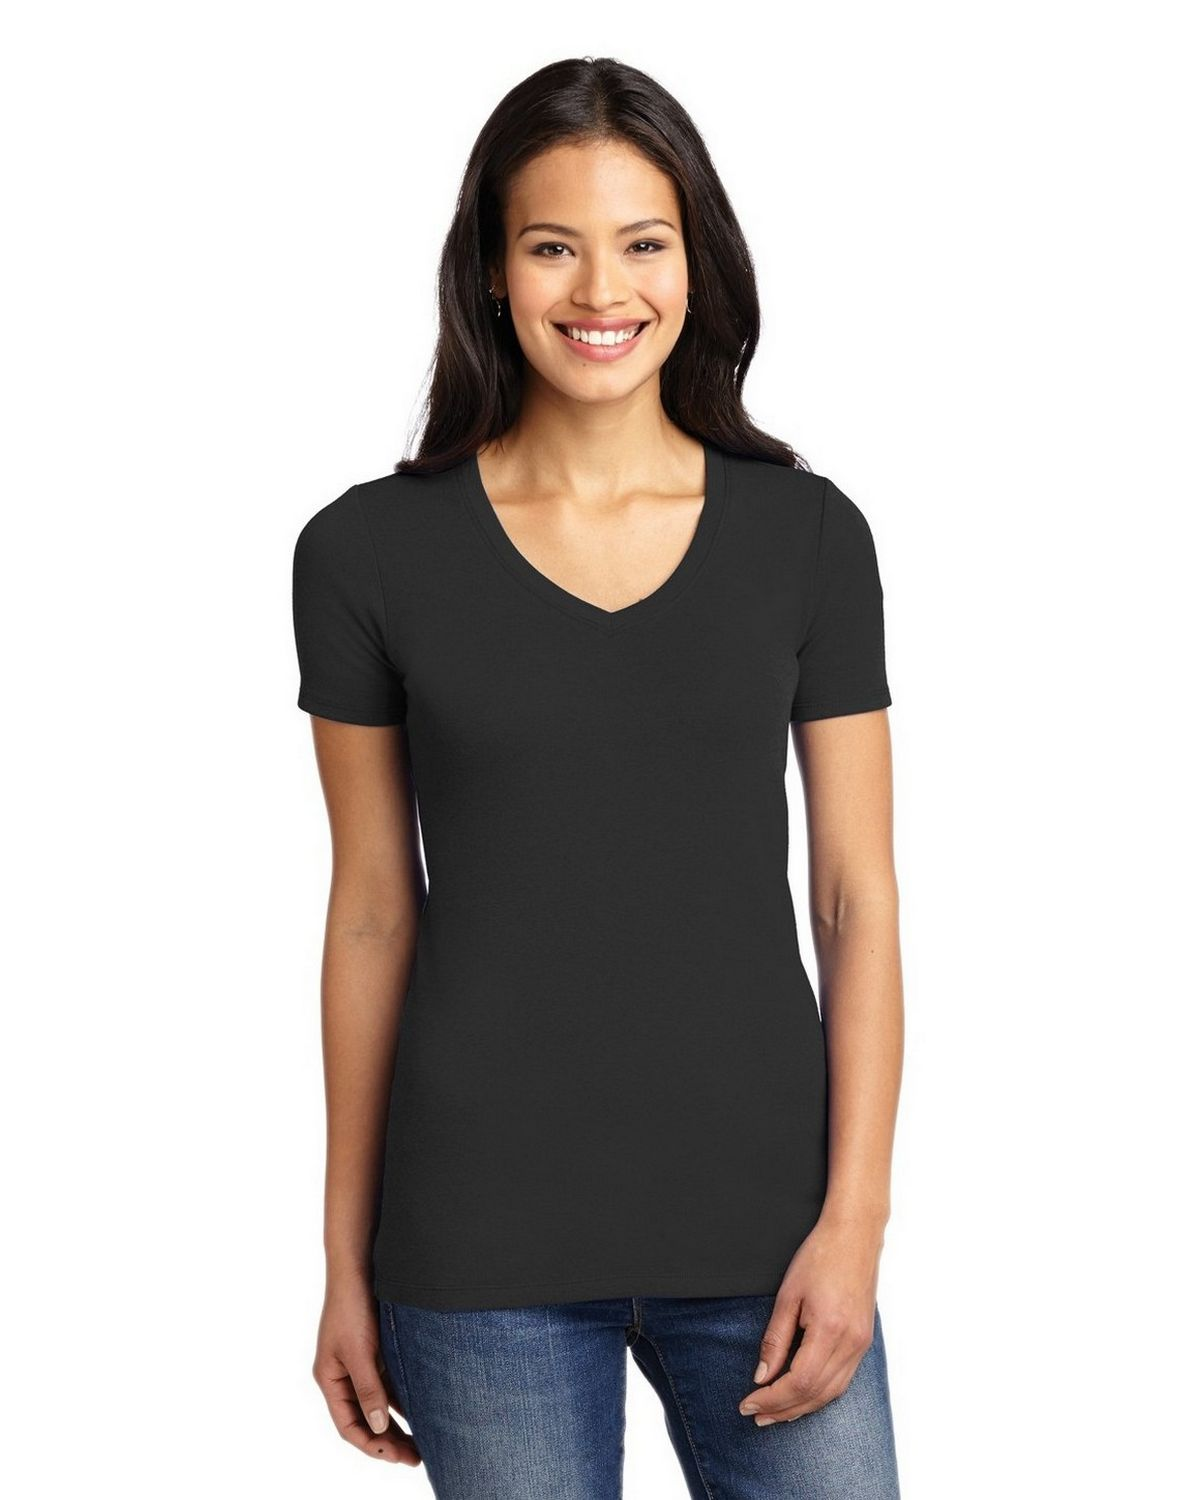 Port Authority LM1005 Ladies Concept Stretch V-Neck Tee - True Royal - XL LM1005